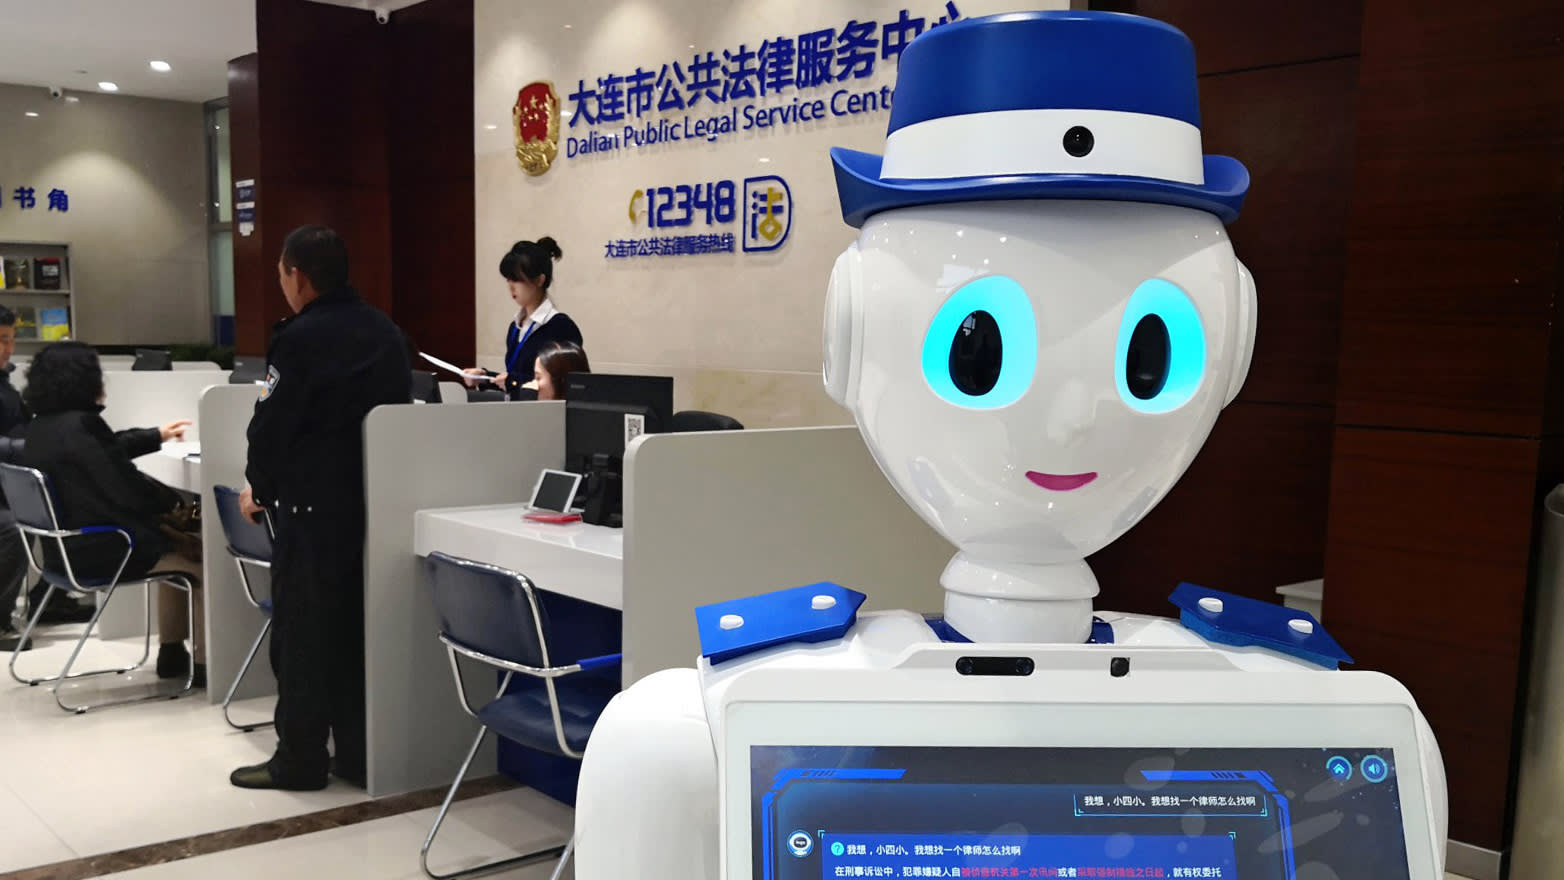 Service robots lend a hand at China's banks and railway